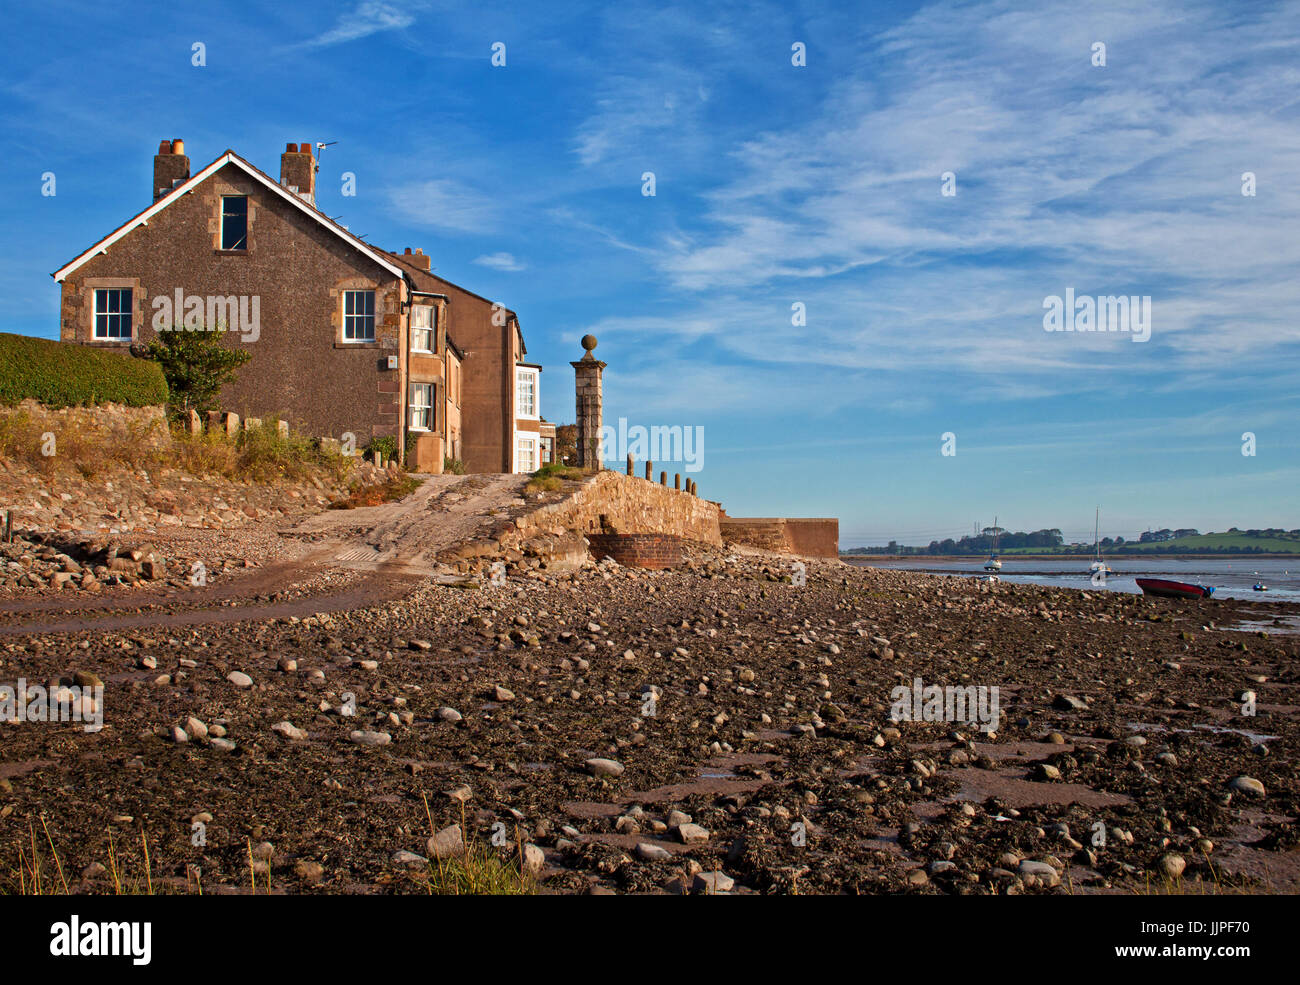 Property on the quayside at Sunderland Point Stock Photo